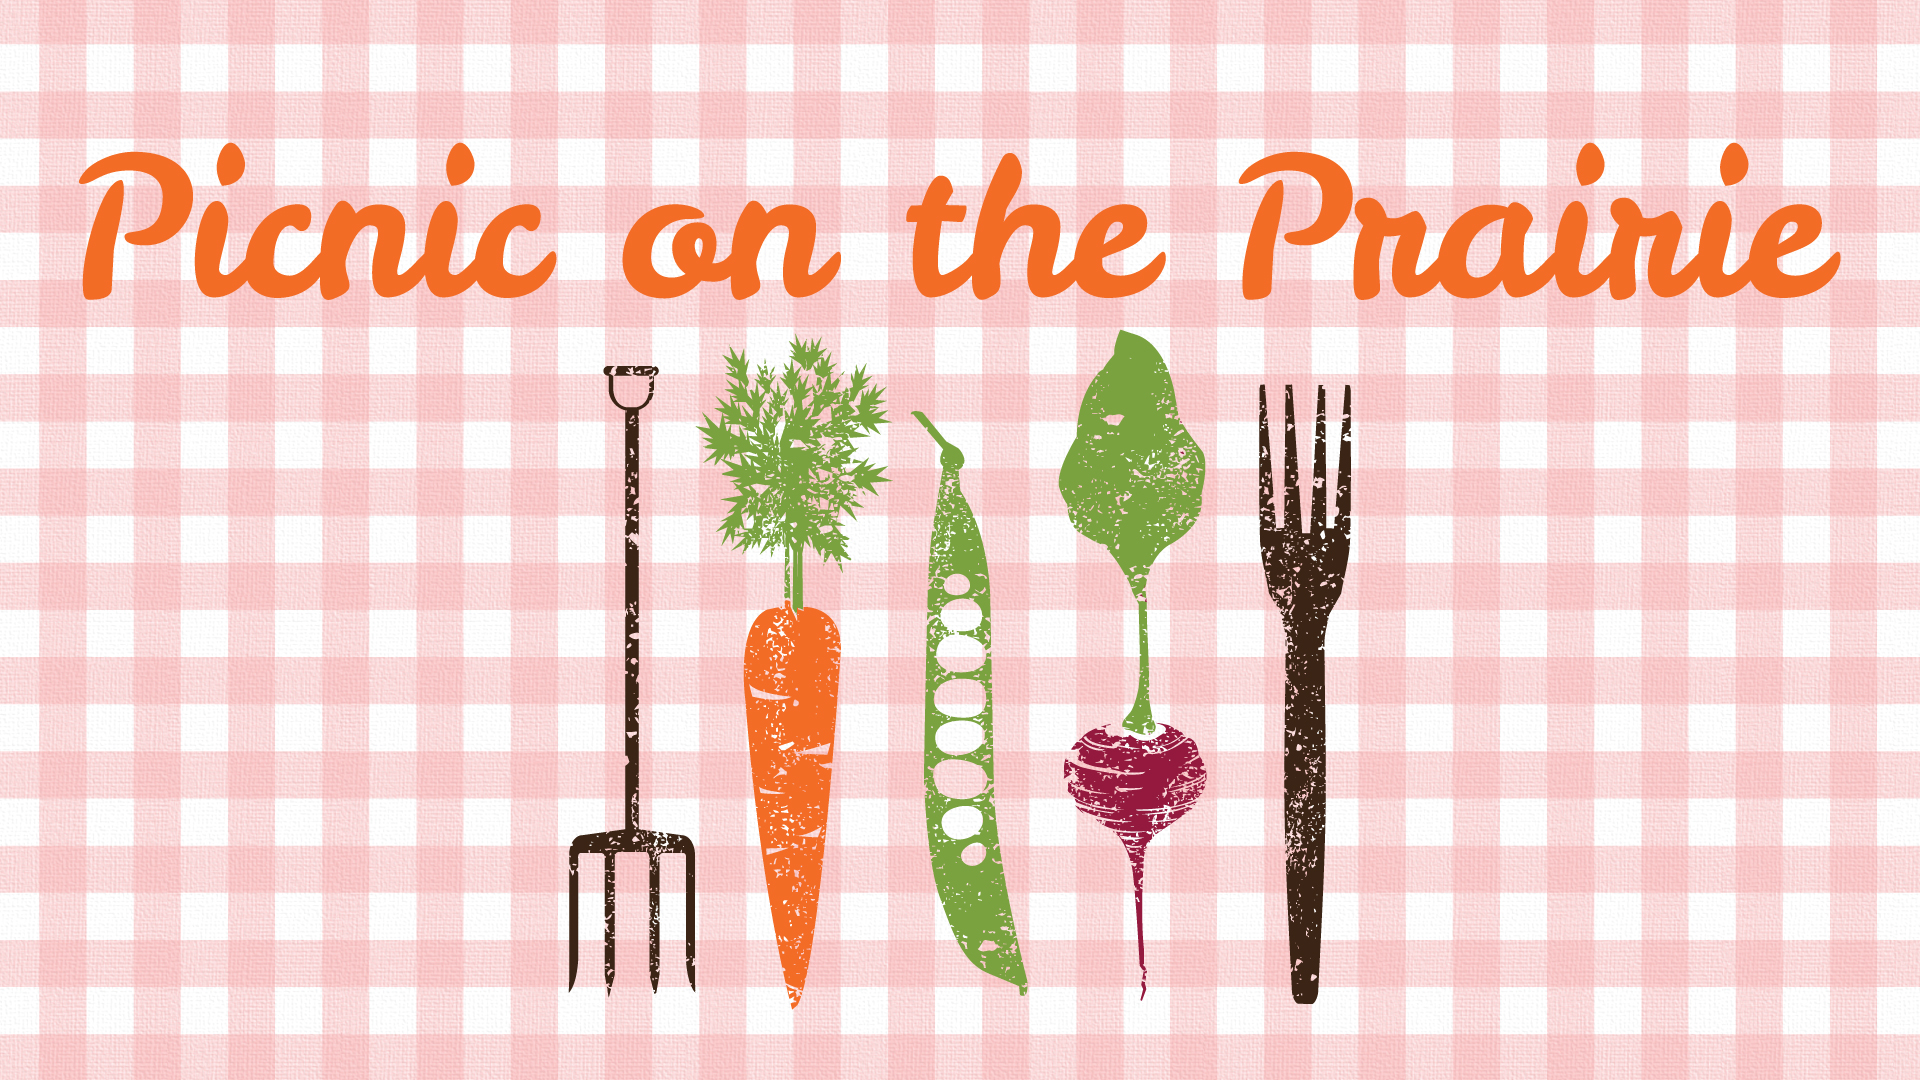 Picnic_FB_Event_Header_1920x1080.jpg